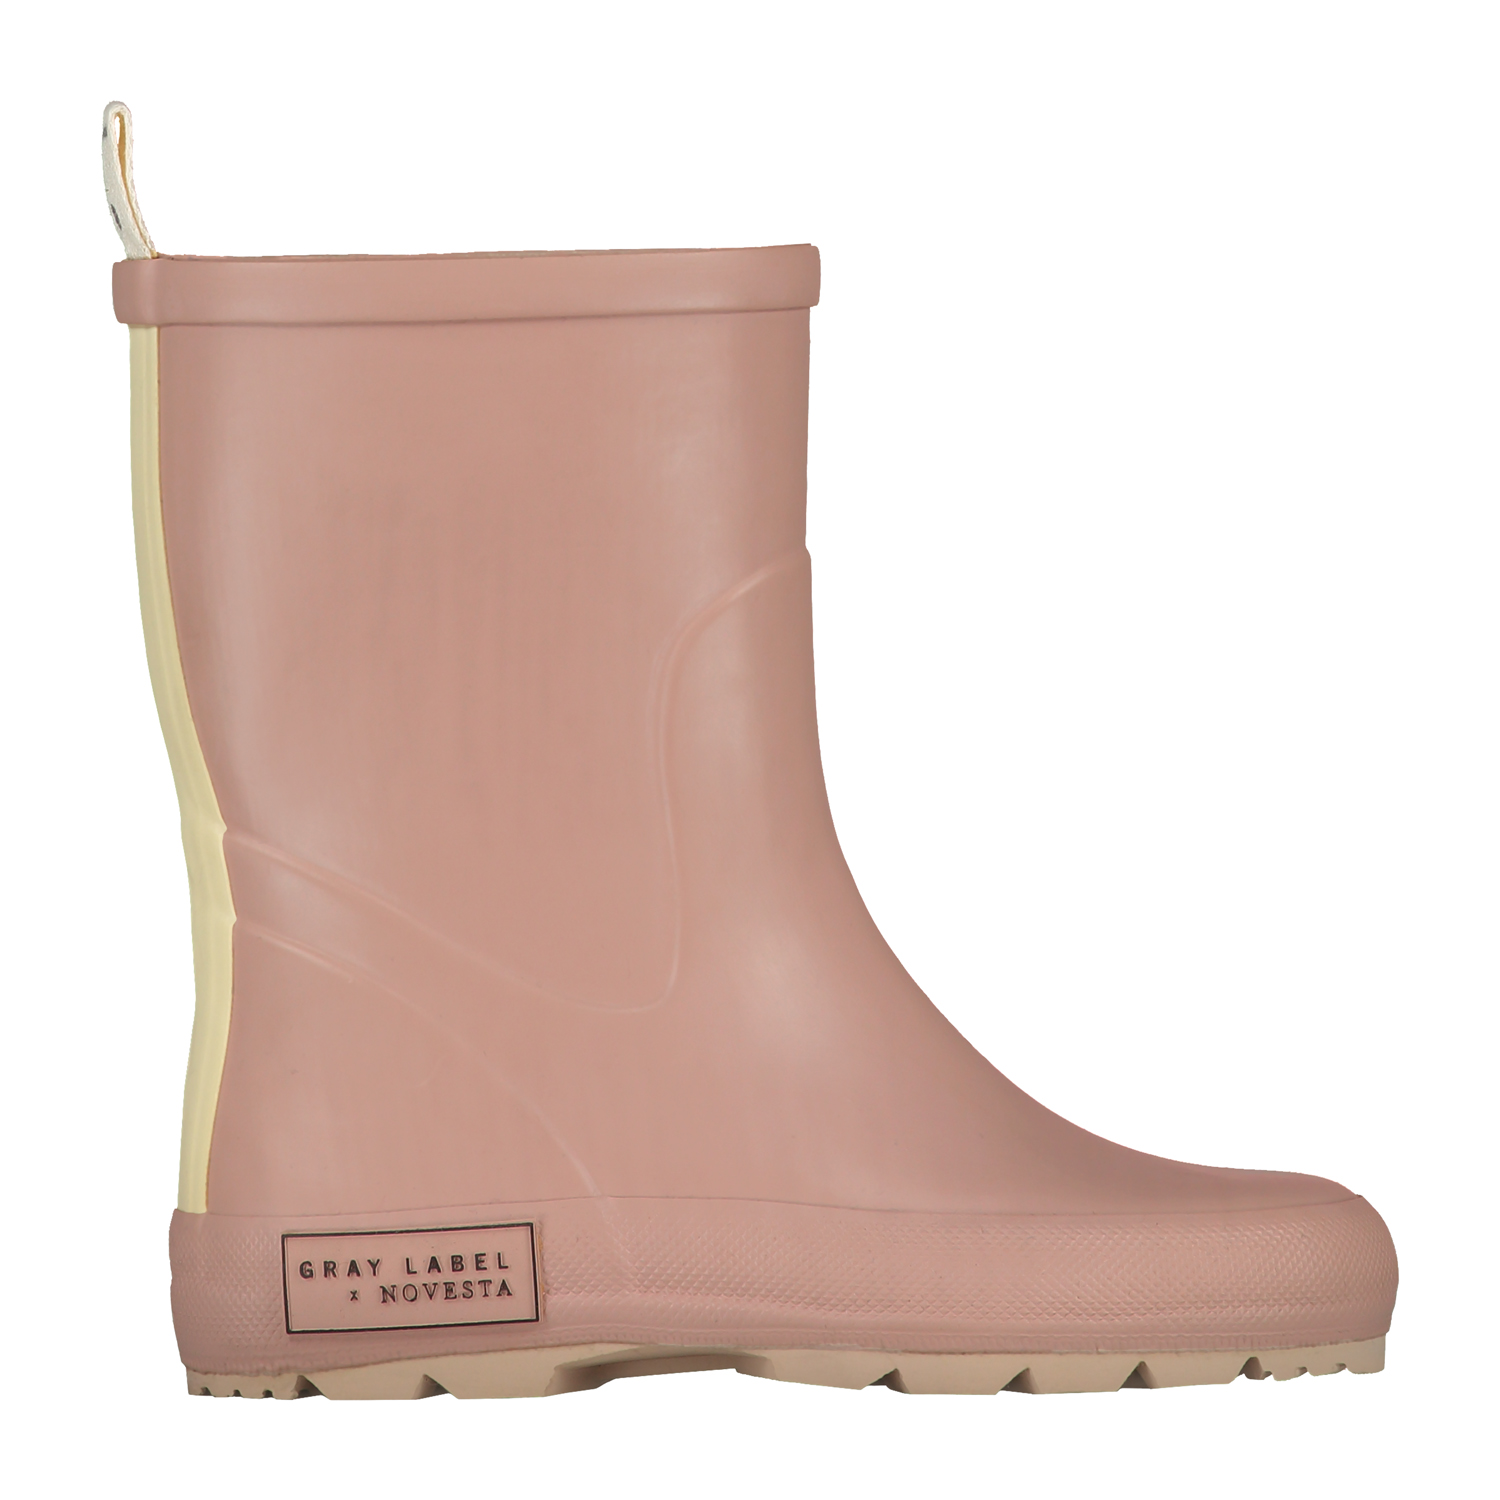 gray label x novesta rain boots rustic clay